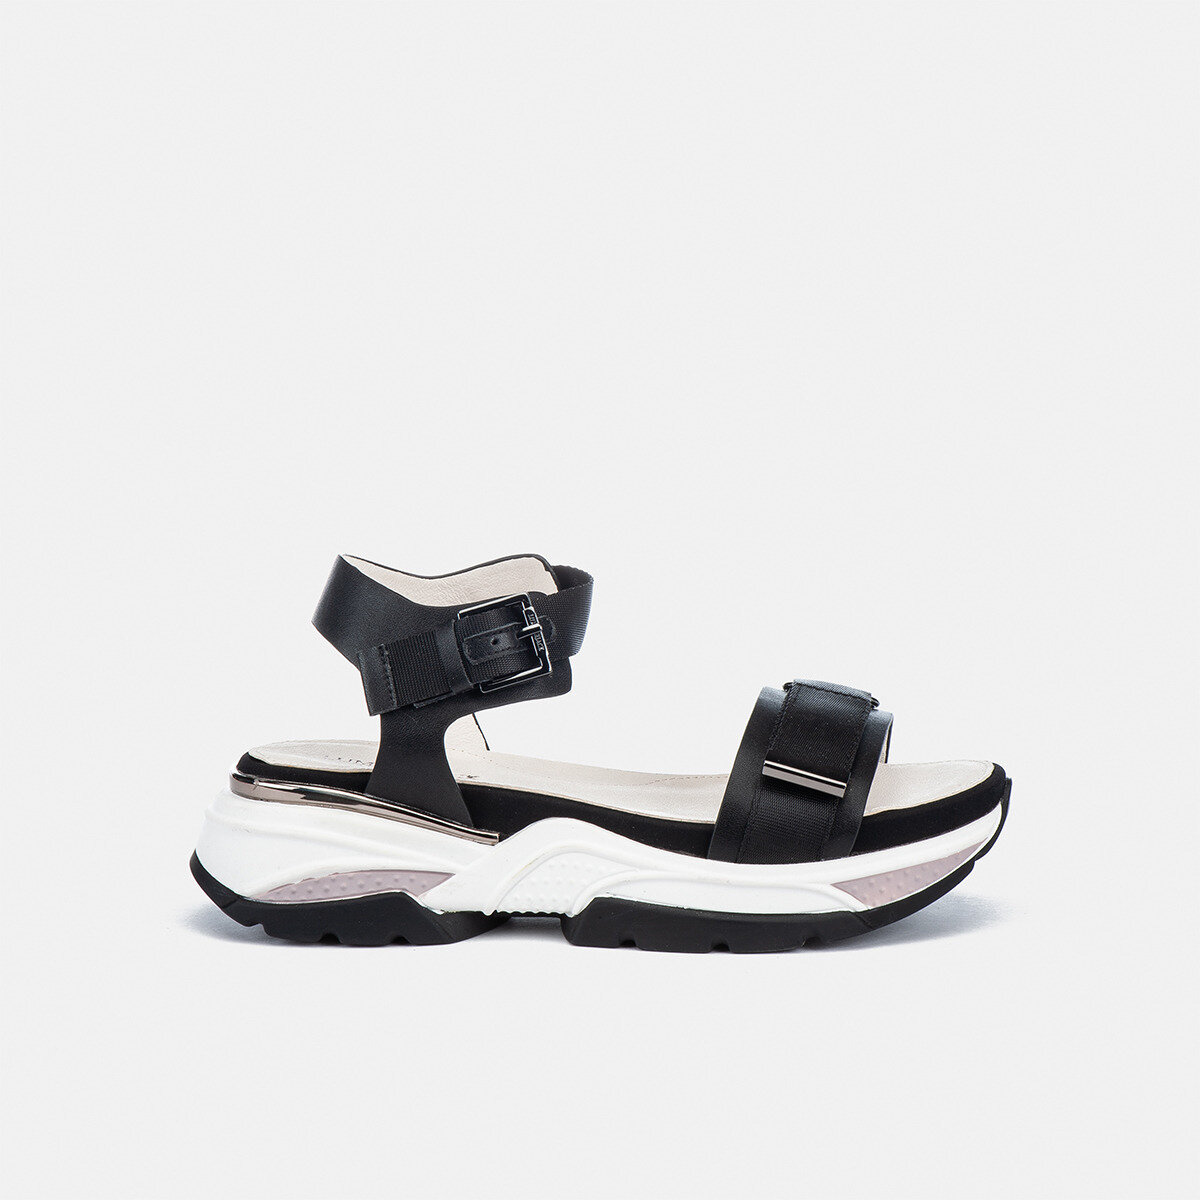 RAINE BLACK Woman Sandals